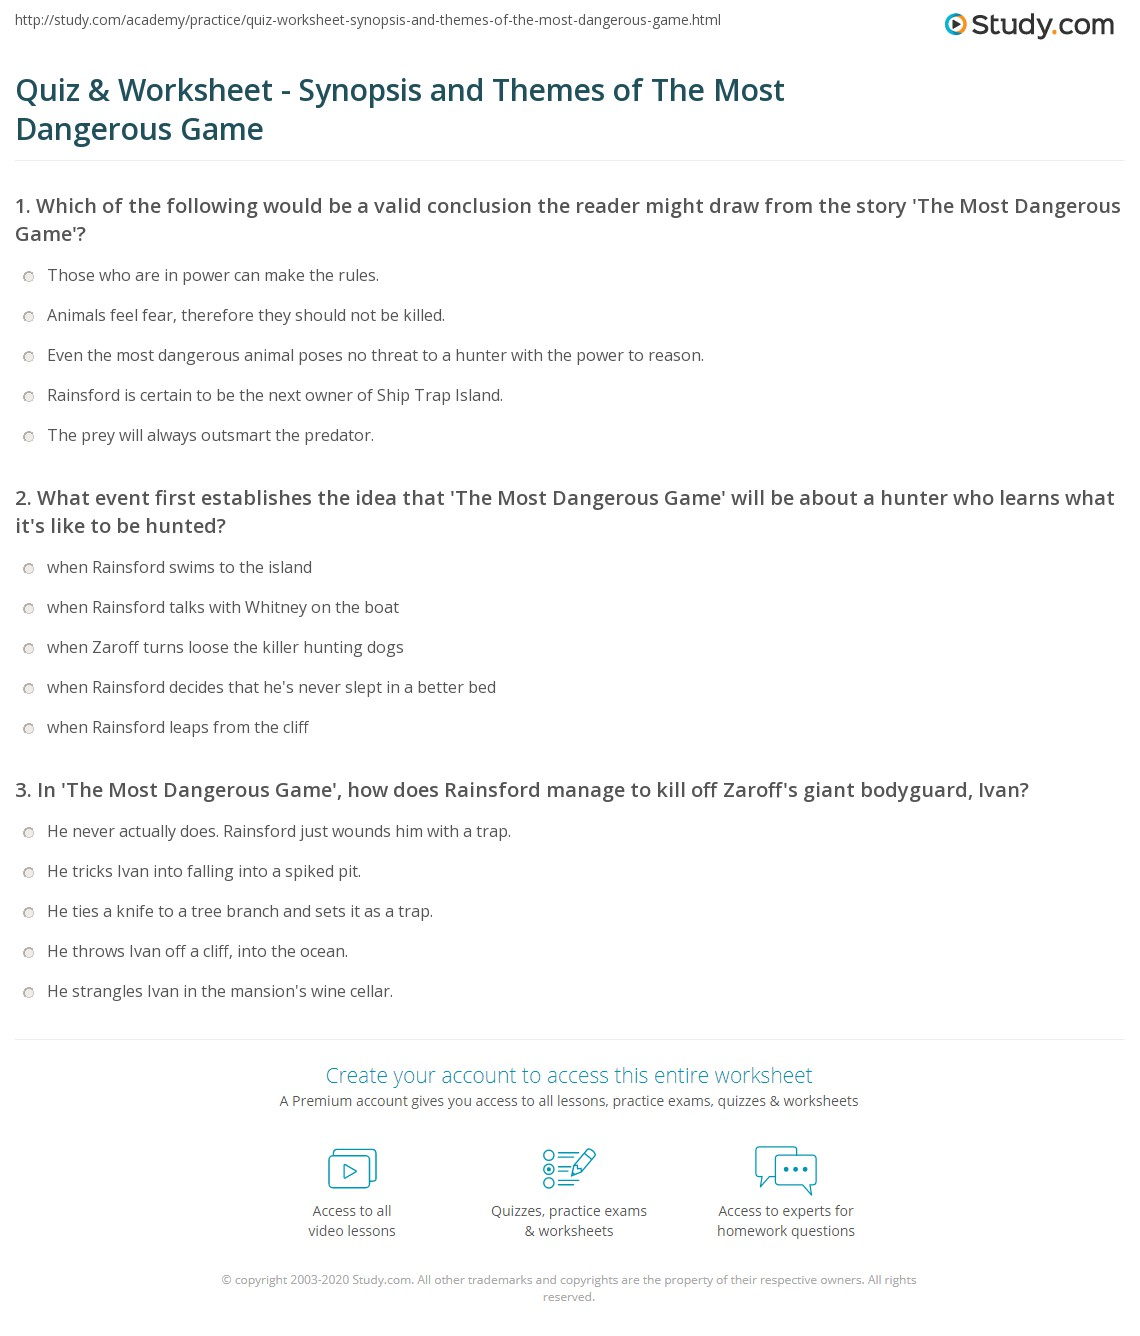 Uncategorized The Most Dangerous Game Worksheet quiz worksheet synopsis and themes of the most dangerous game print summary worksheet